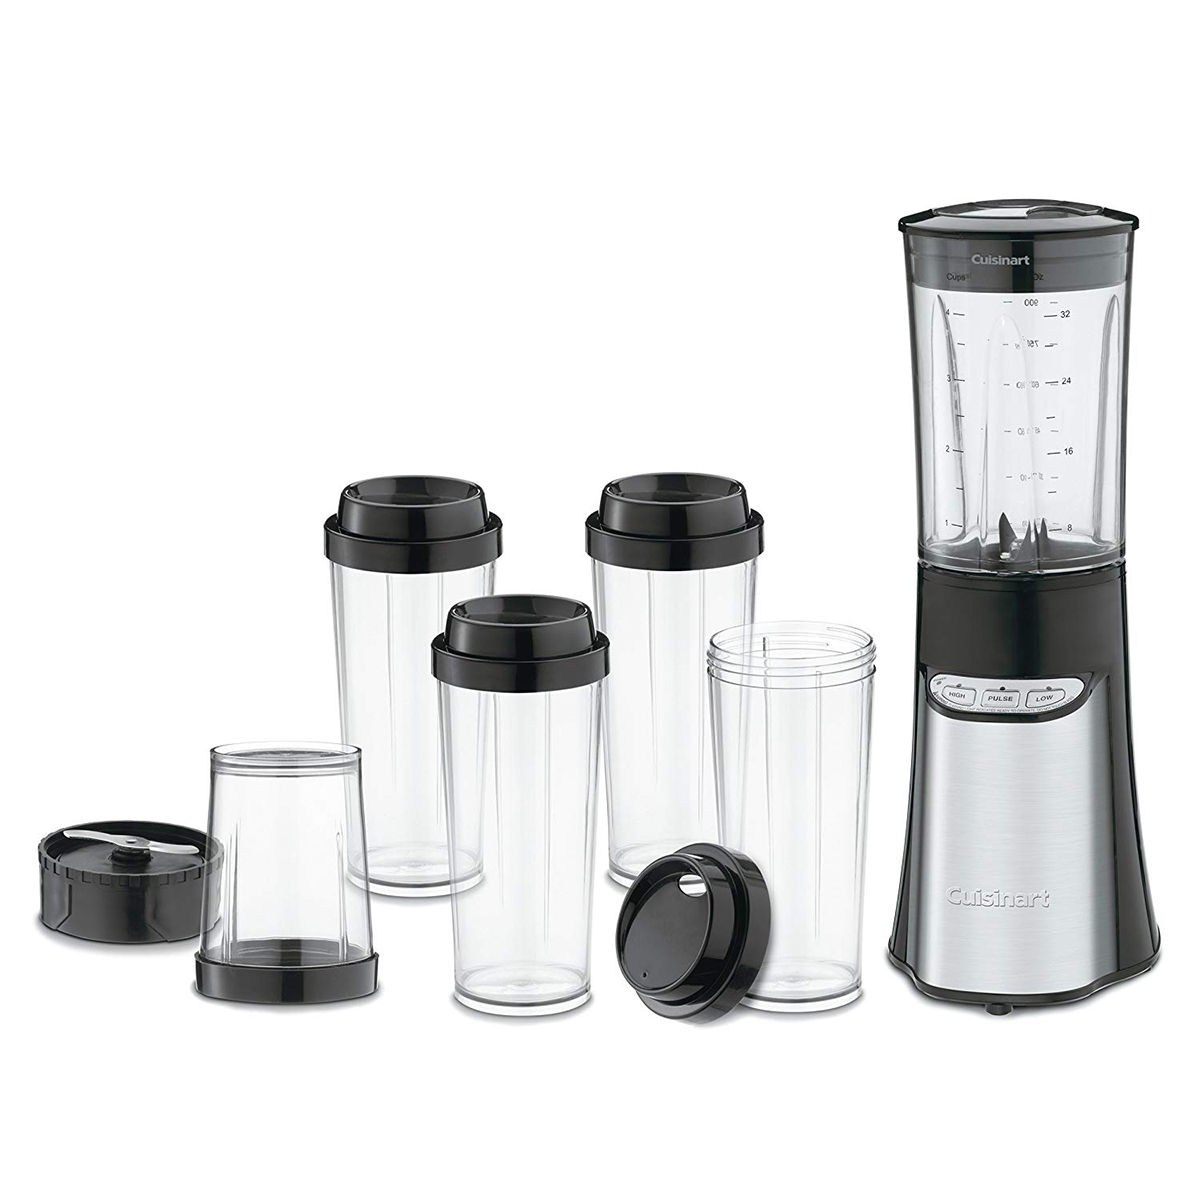 Best Personal Option: Cuisinart Compact Portable Blending/Chopping System